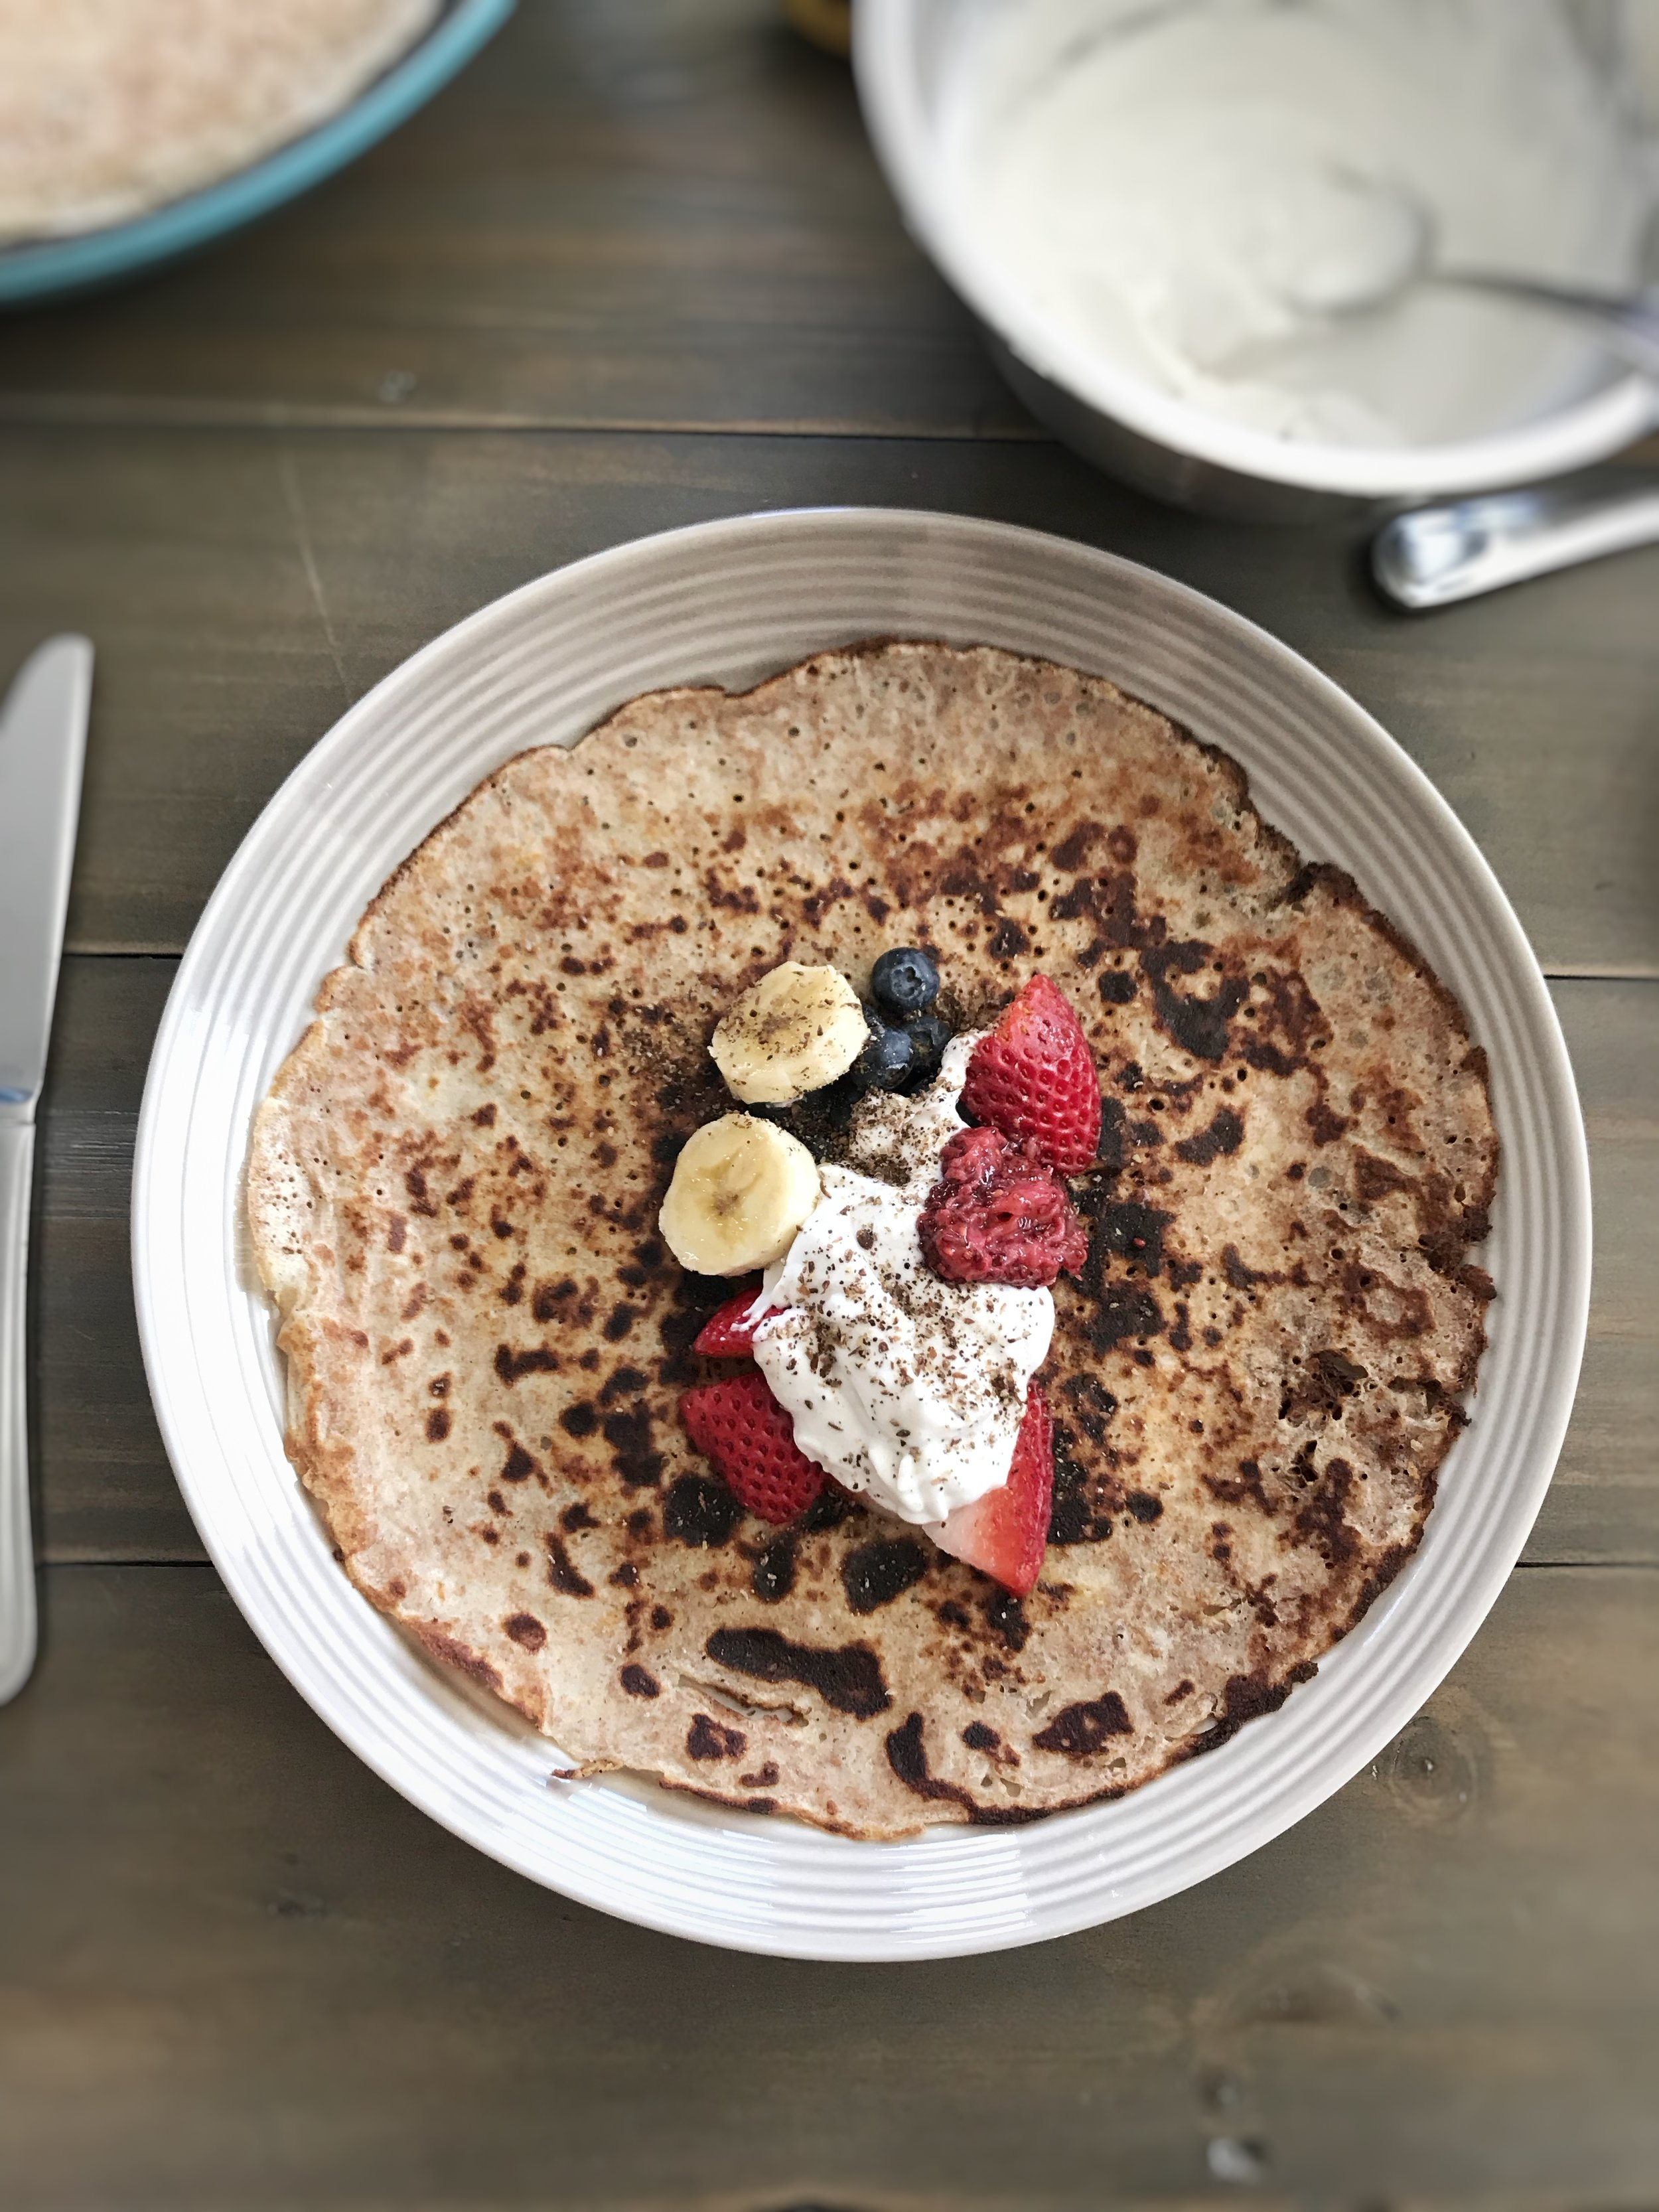 Antioxidant-Rich Crepes - Rich in antioxidants, omega 3 fats & gluten freeIngredients:1 cup spelt flour2 cups nut milk2 eggs2 tbsp honey or coconut sugar1 tsp vanillaPinch of salt1 tbsp coconut oil1 tsp Now Foods Rawsome MealMakes 5-6 10 inch crepes